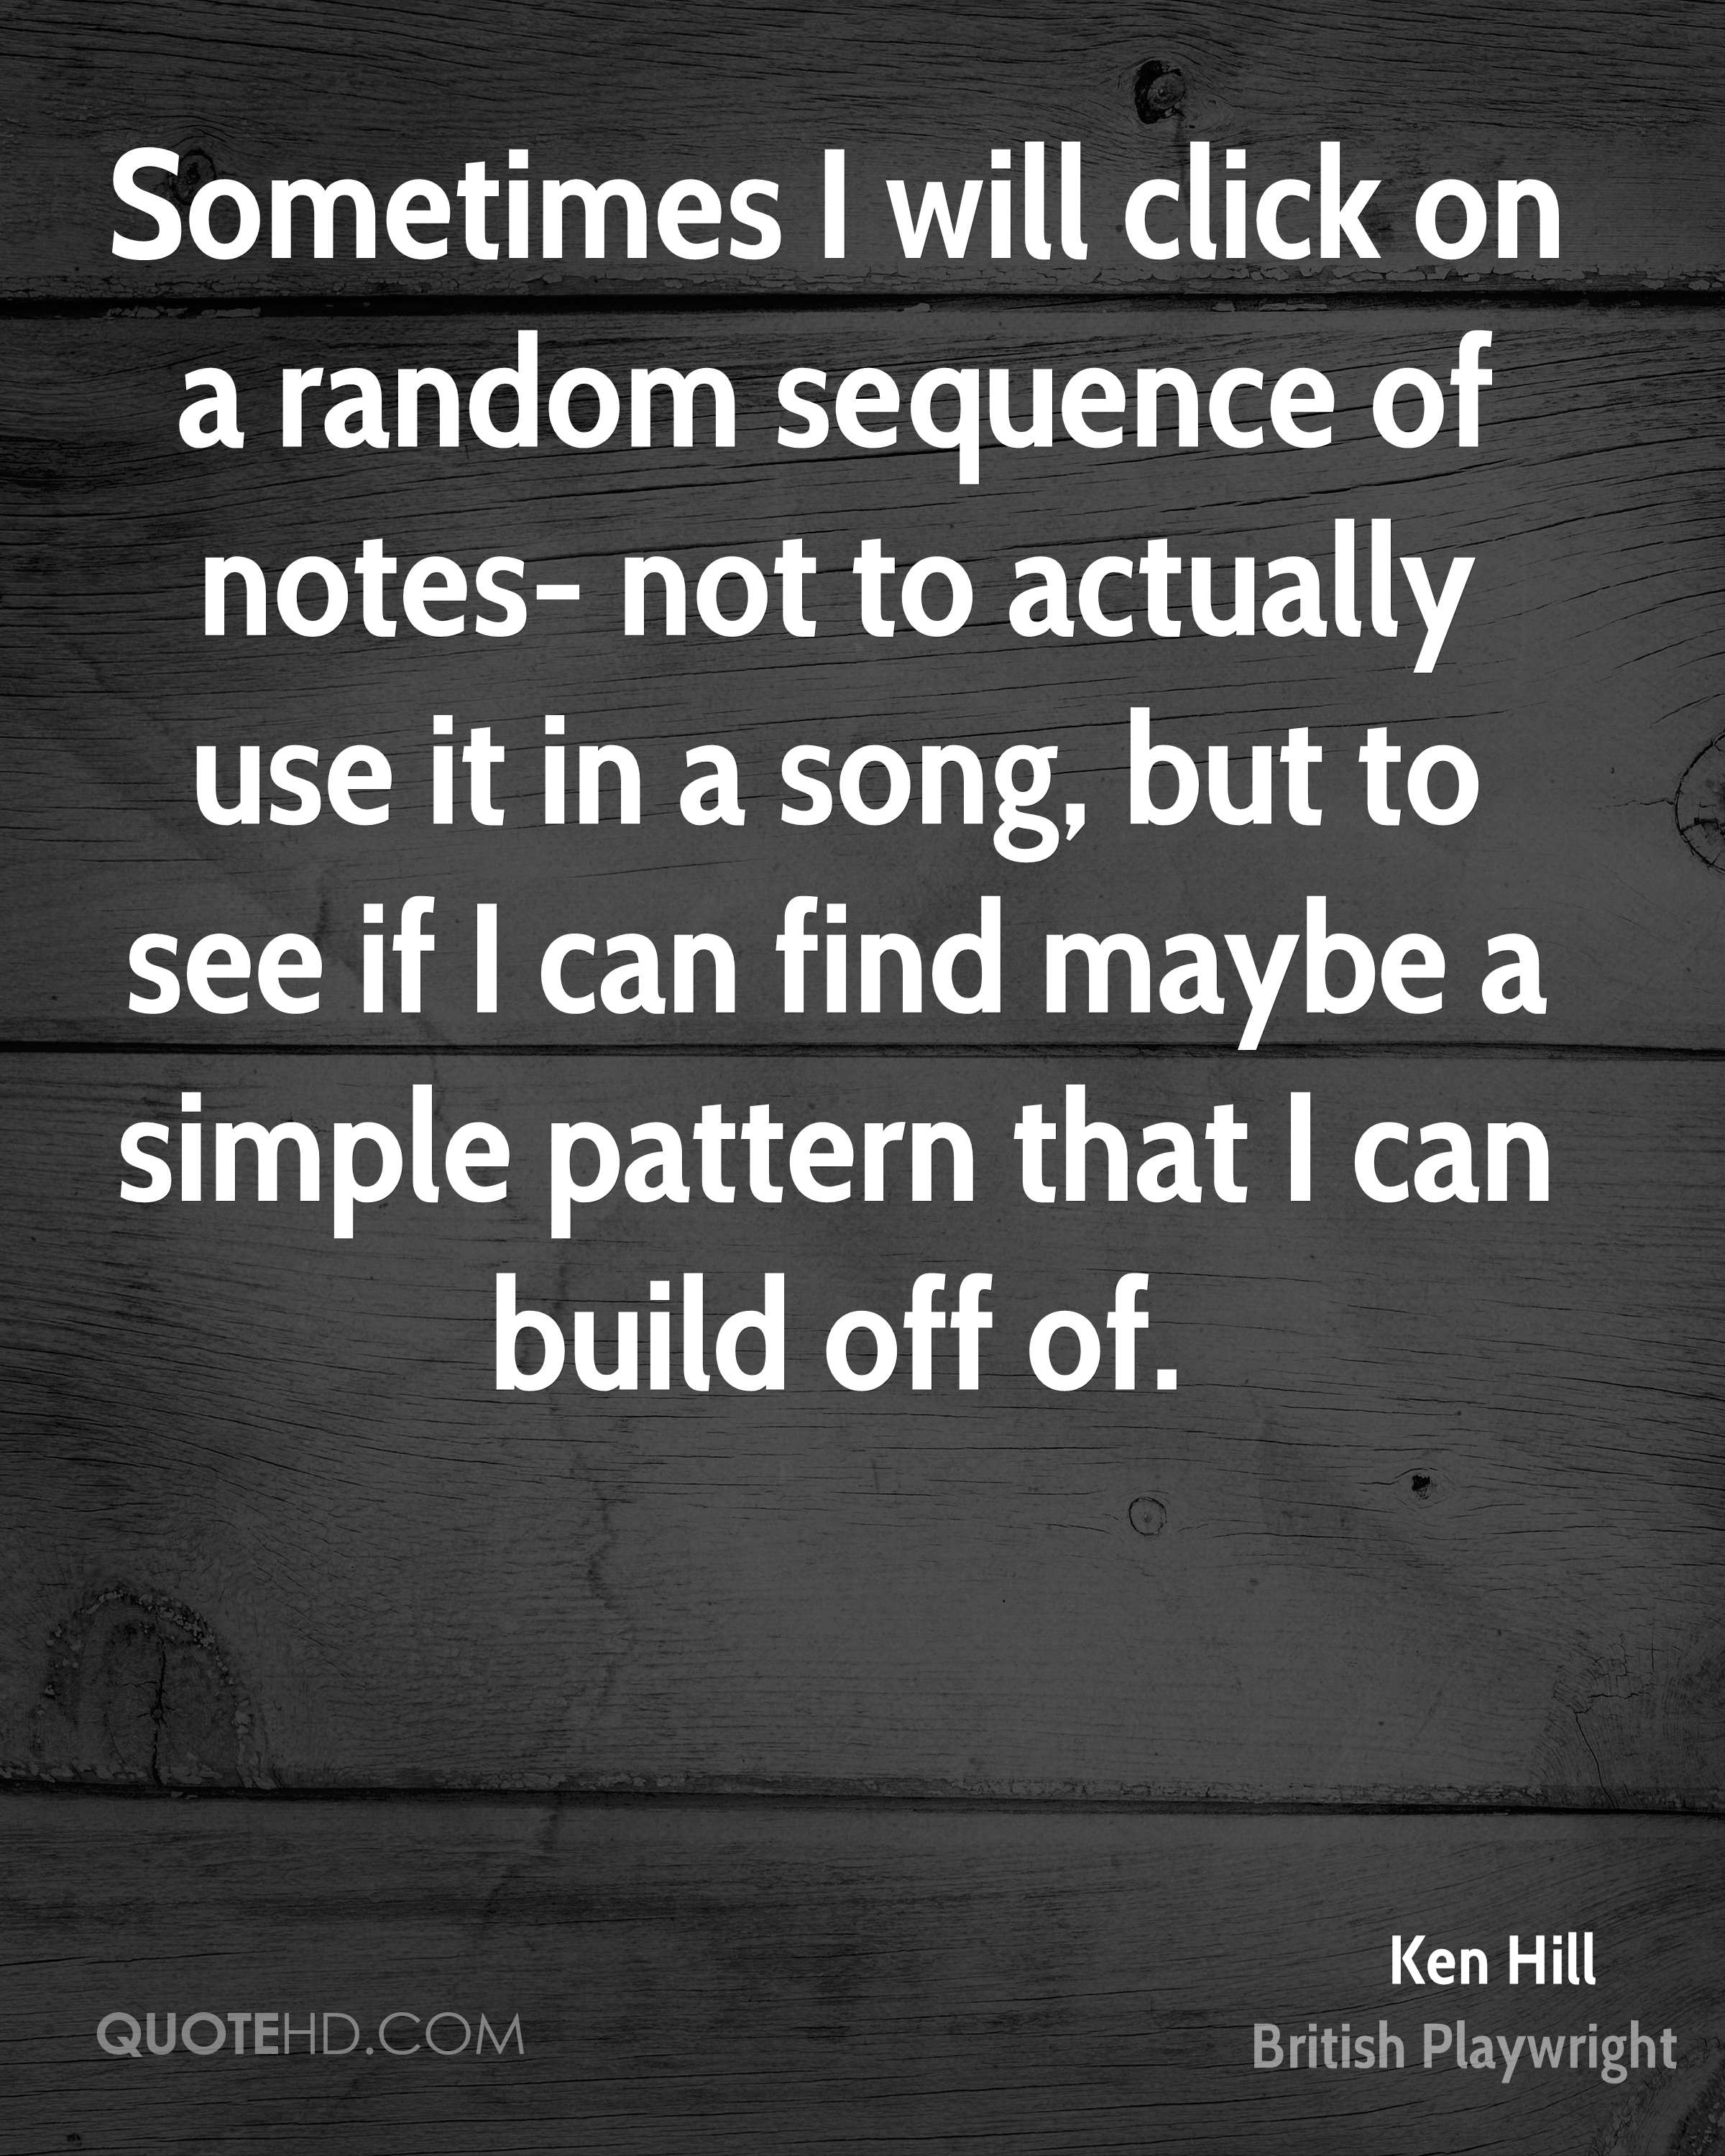 Sometimes I will click on a random sequence of notes- not to actually use it in a song, but to see if I can find maybe a simple pattern that I can build off of.